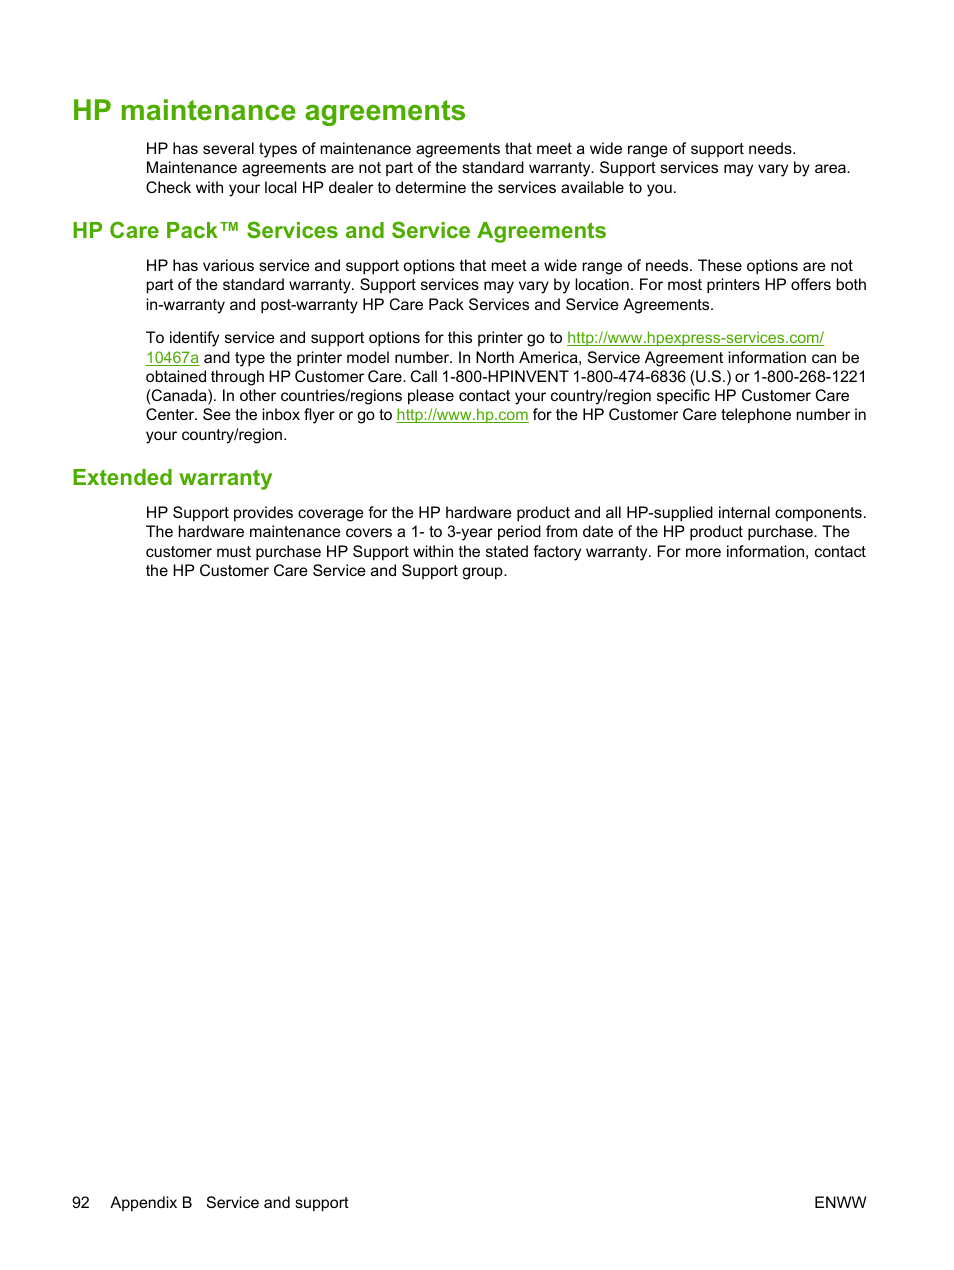 Hp maintenance agreements, Hp care pack™ services and service agreements,  Extended warranty | HP Color LaserJet CP1215 Printer User Manual | Page 100  / 122